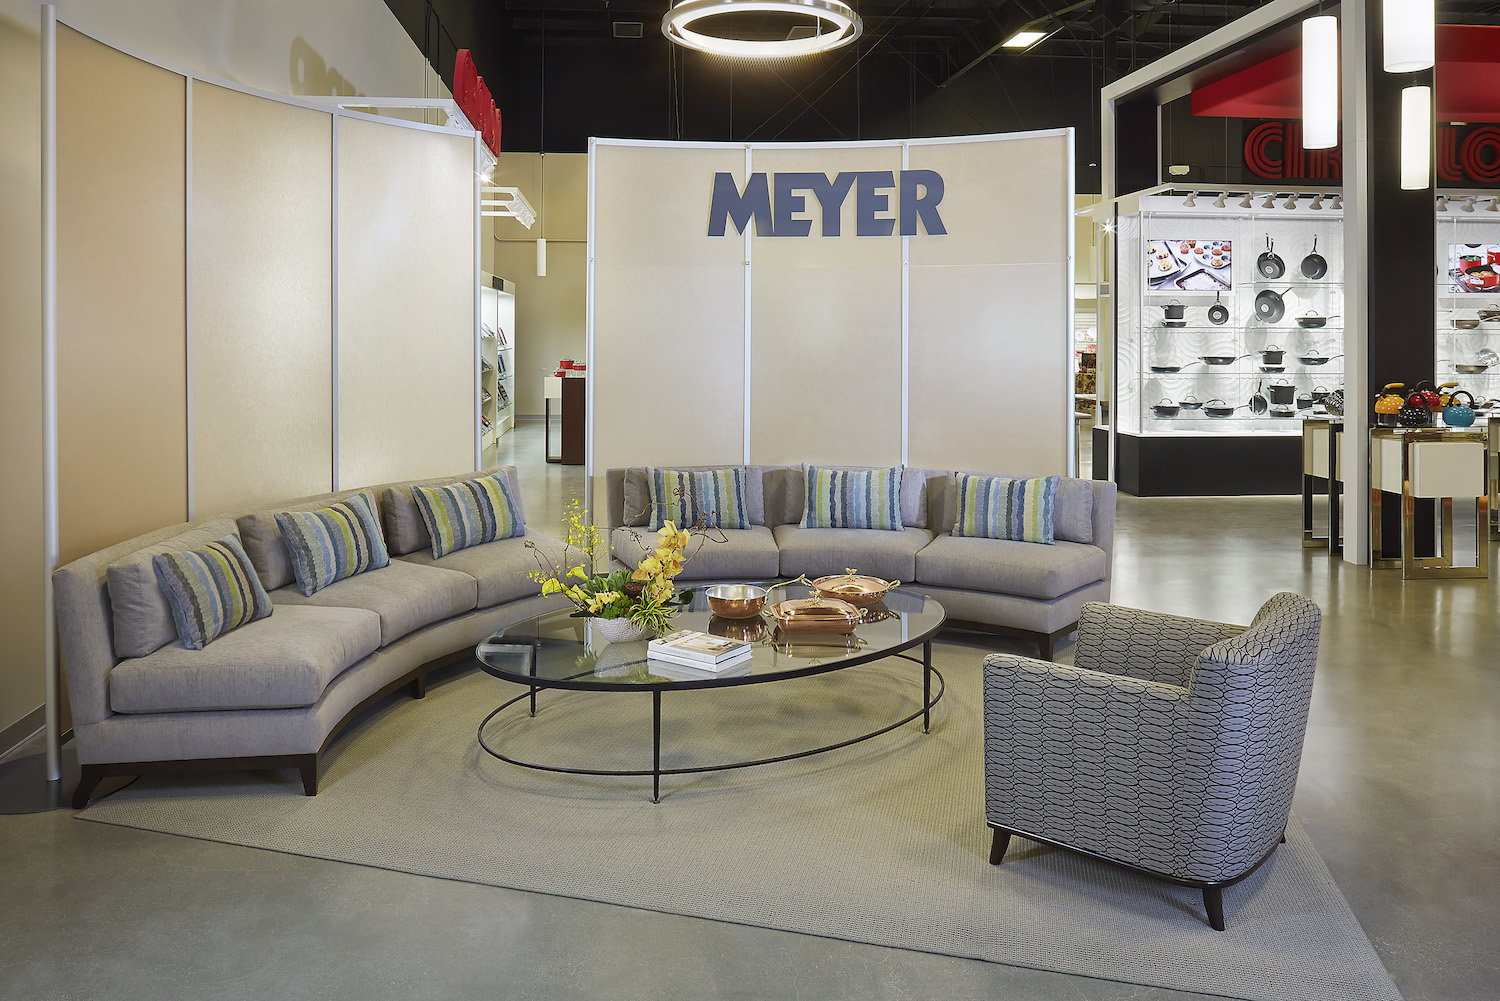 Attrayant Los Gatos Commercial Construction Interior Design MeyerLounge1xFCR2